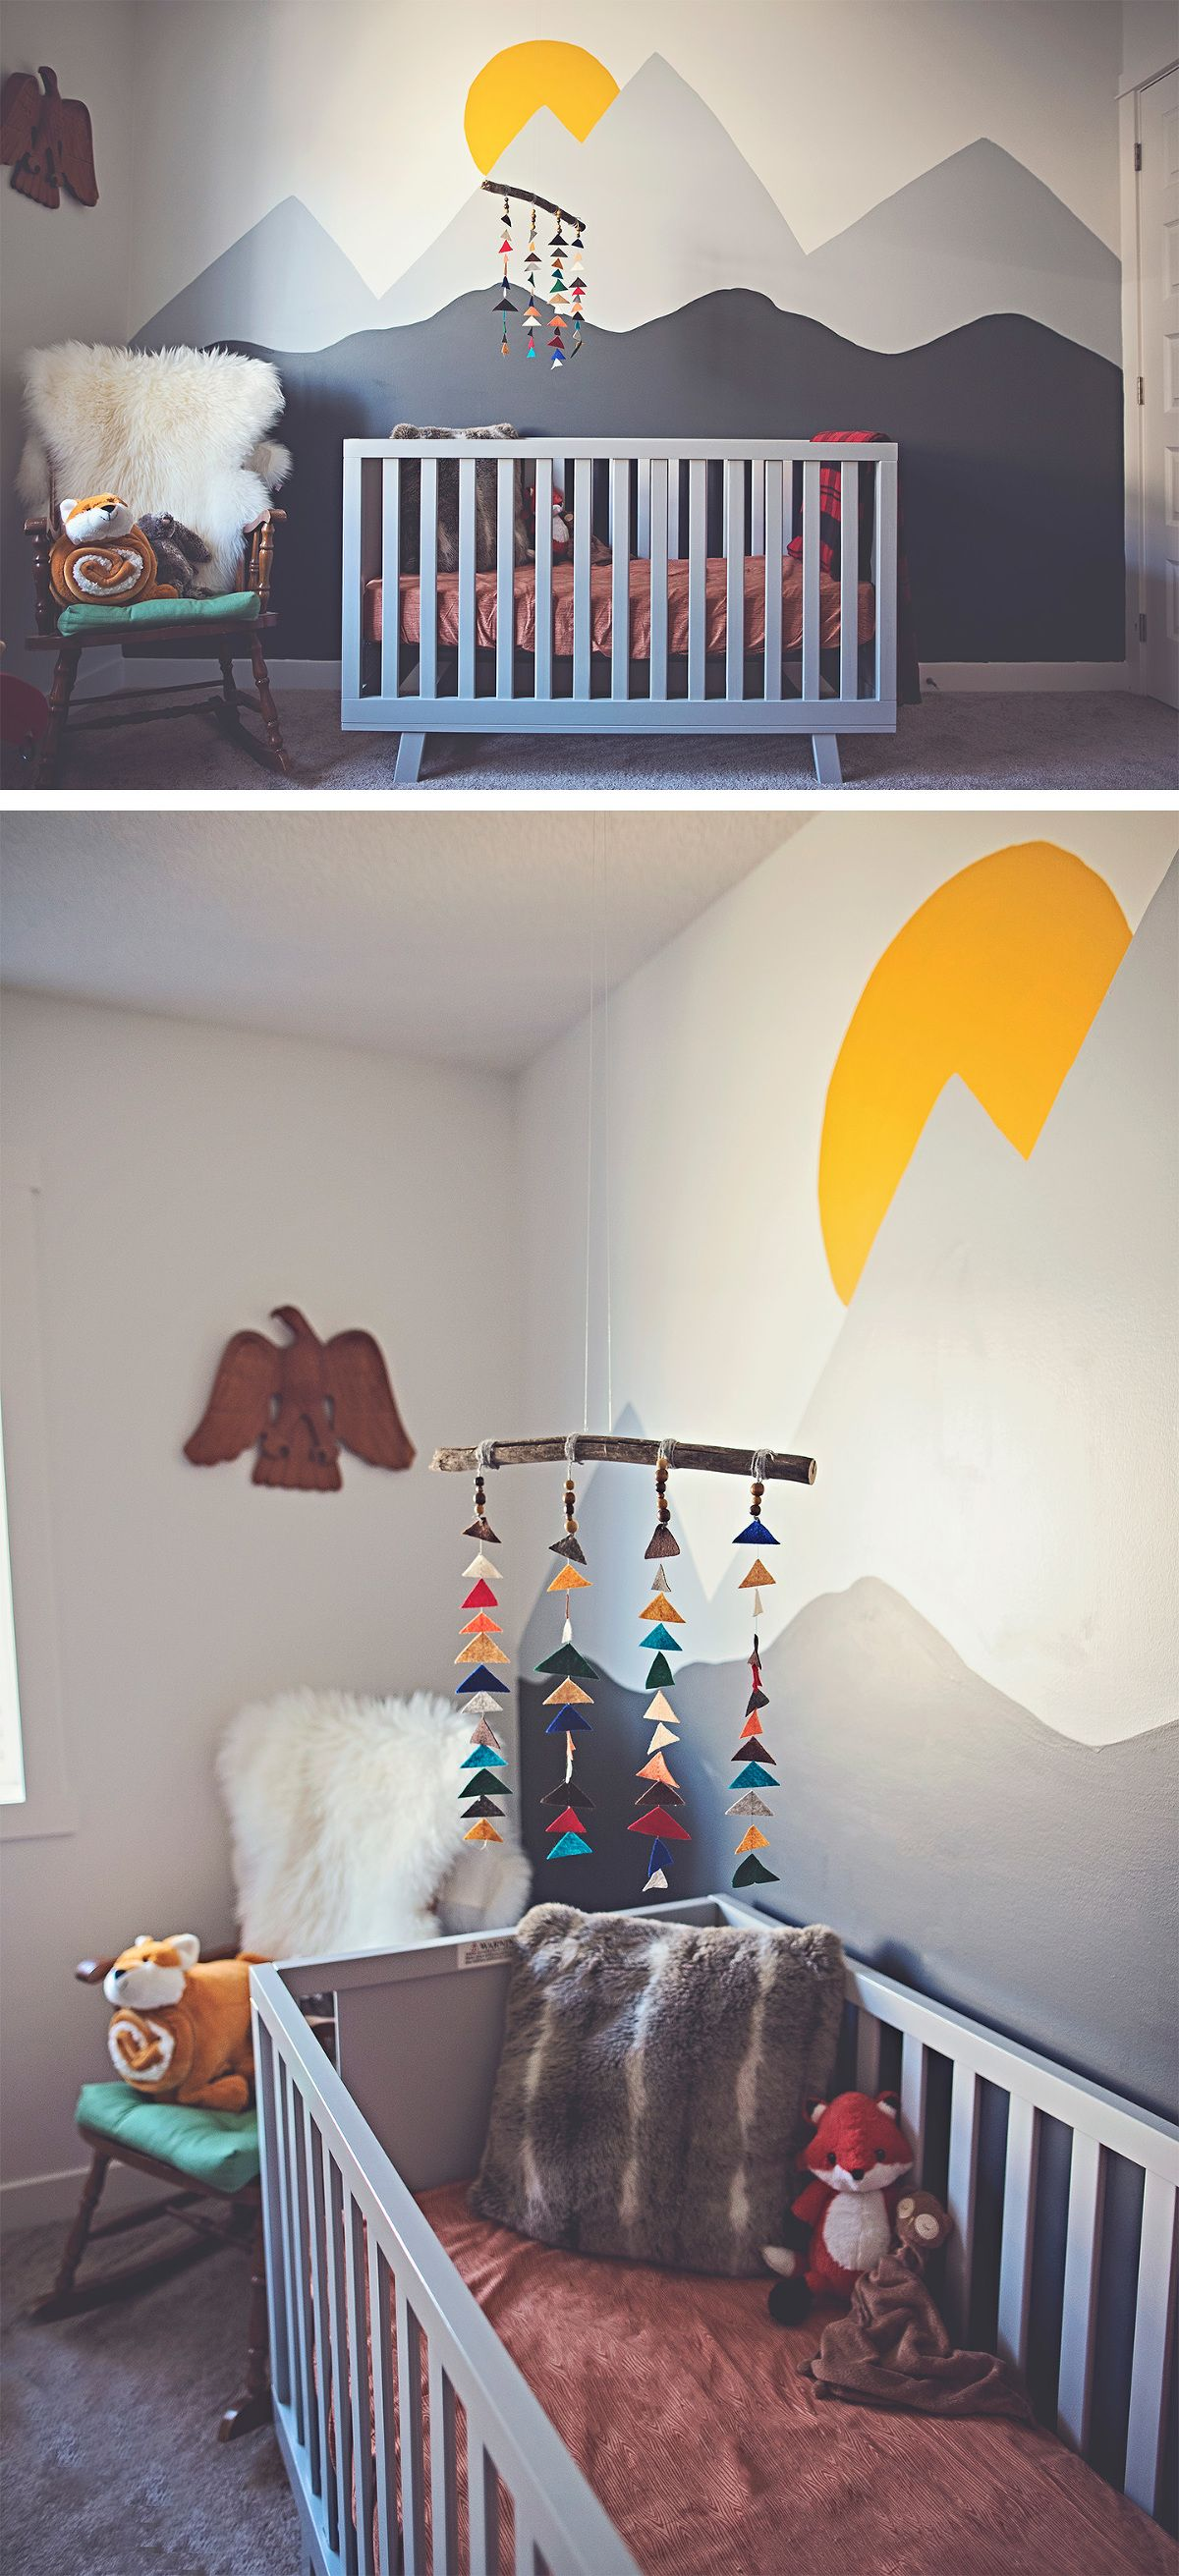 Simple Baby Boy Nursery Ideas: Mountain Mural And That Simple Mobile. So Perfect For A